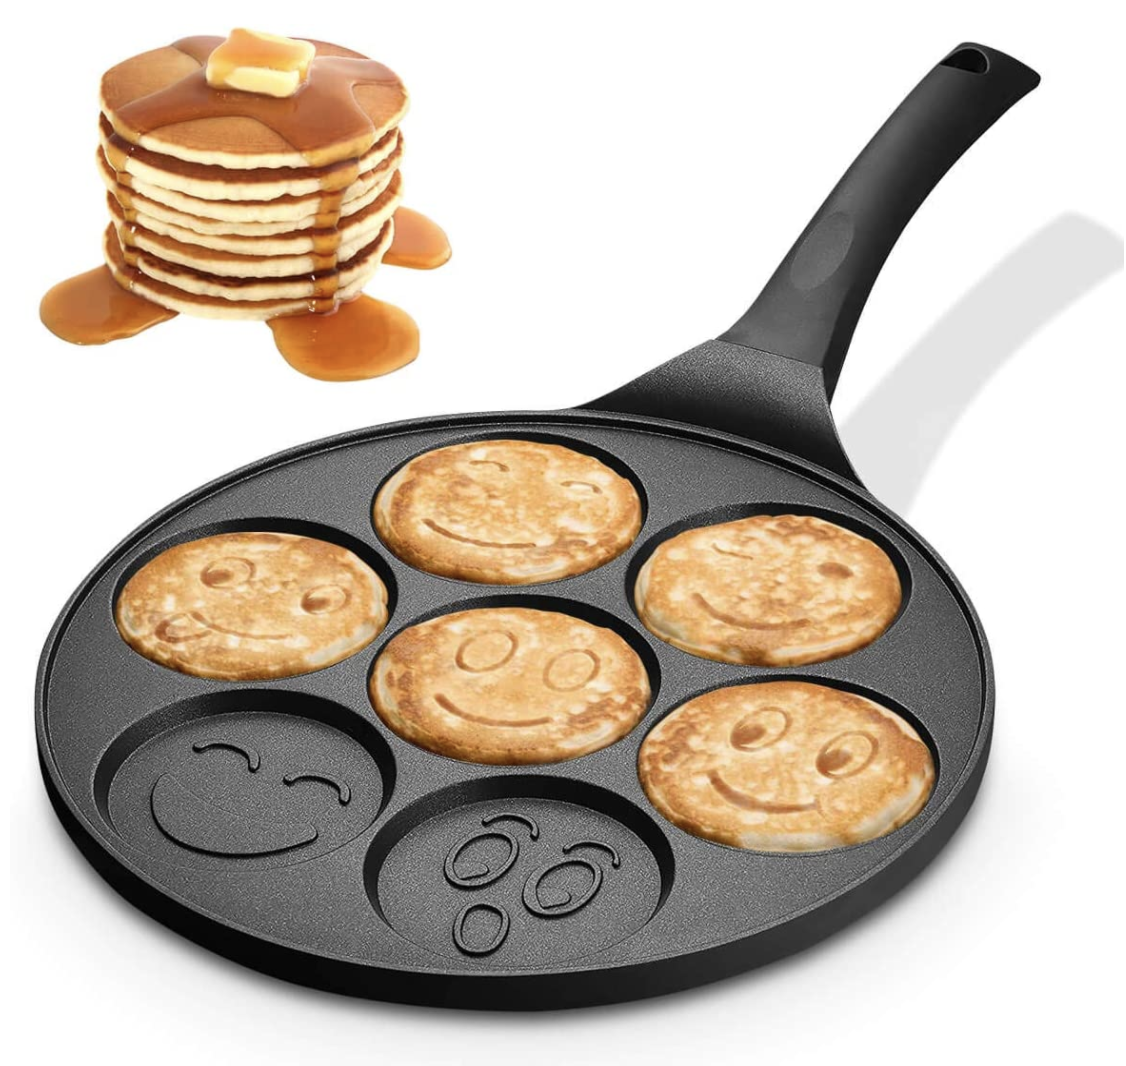 An emoji pancake pan with smiley and winking faces